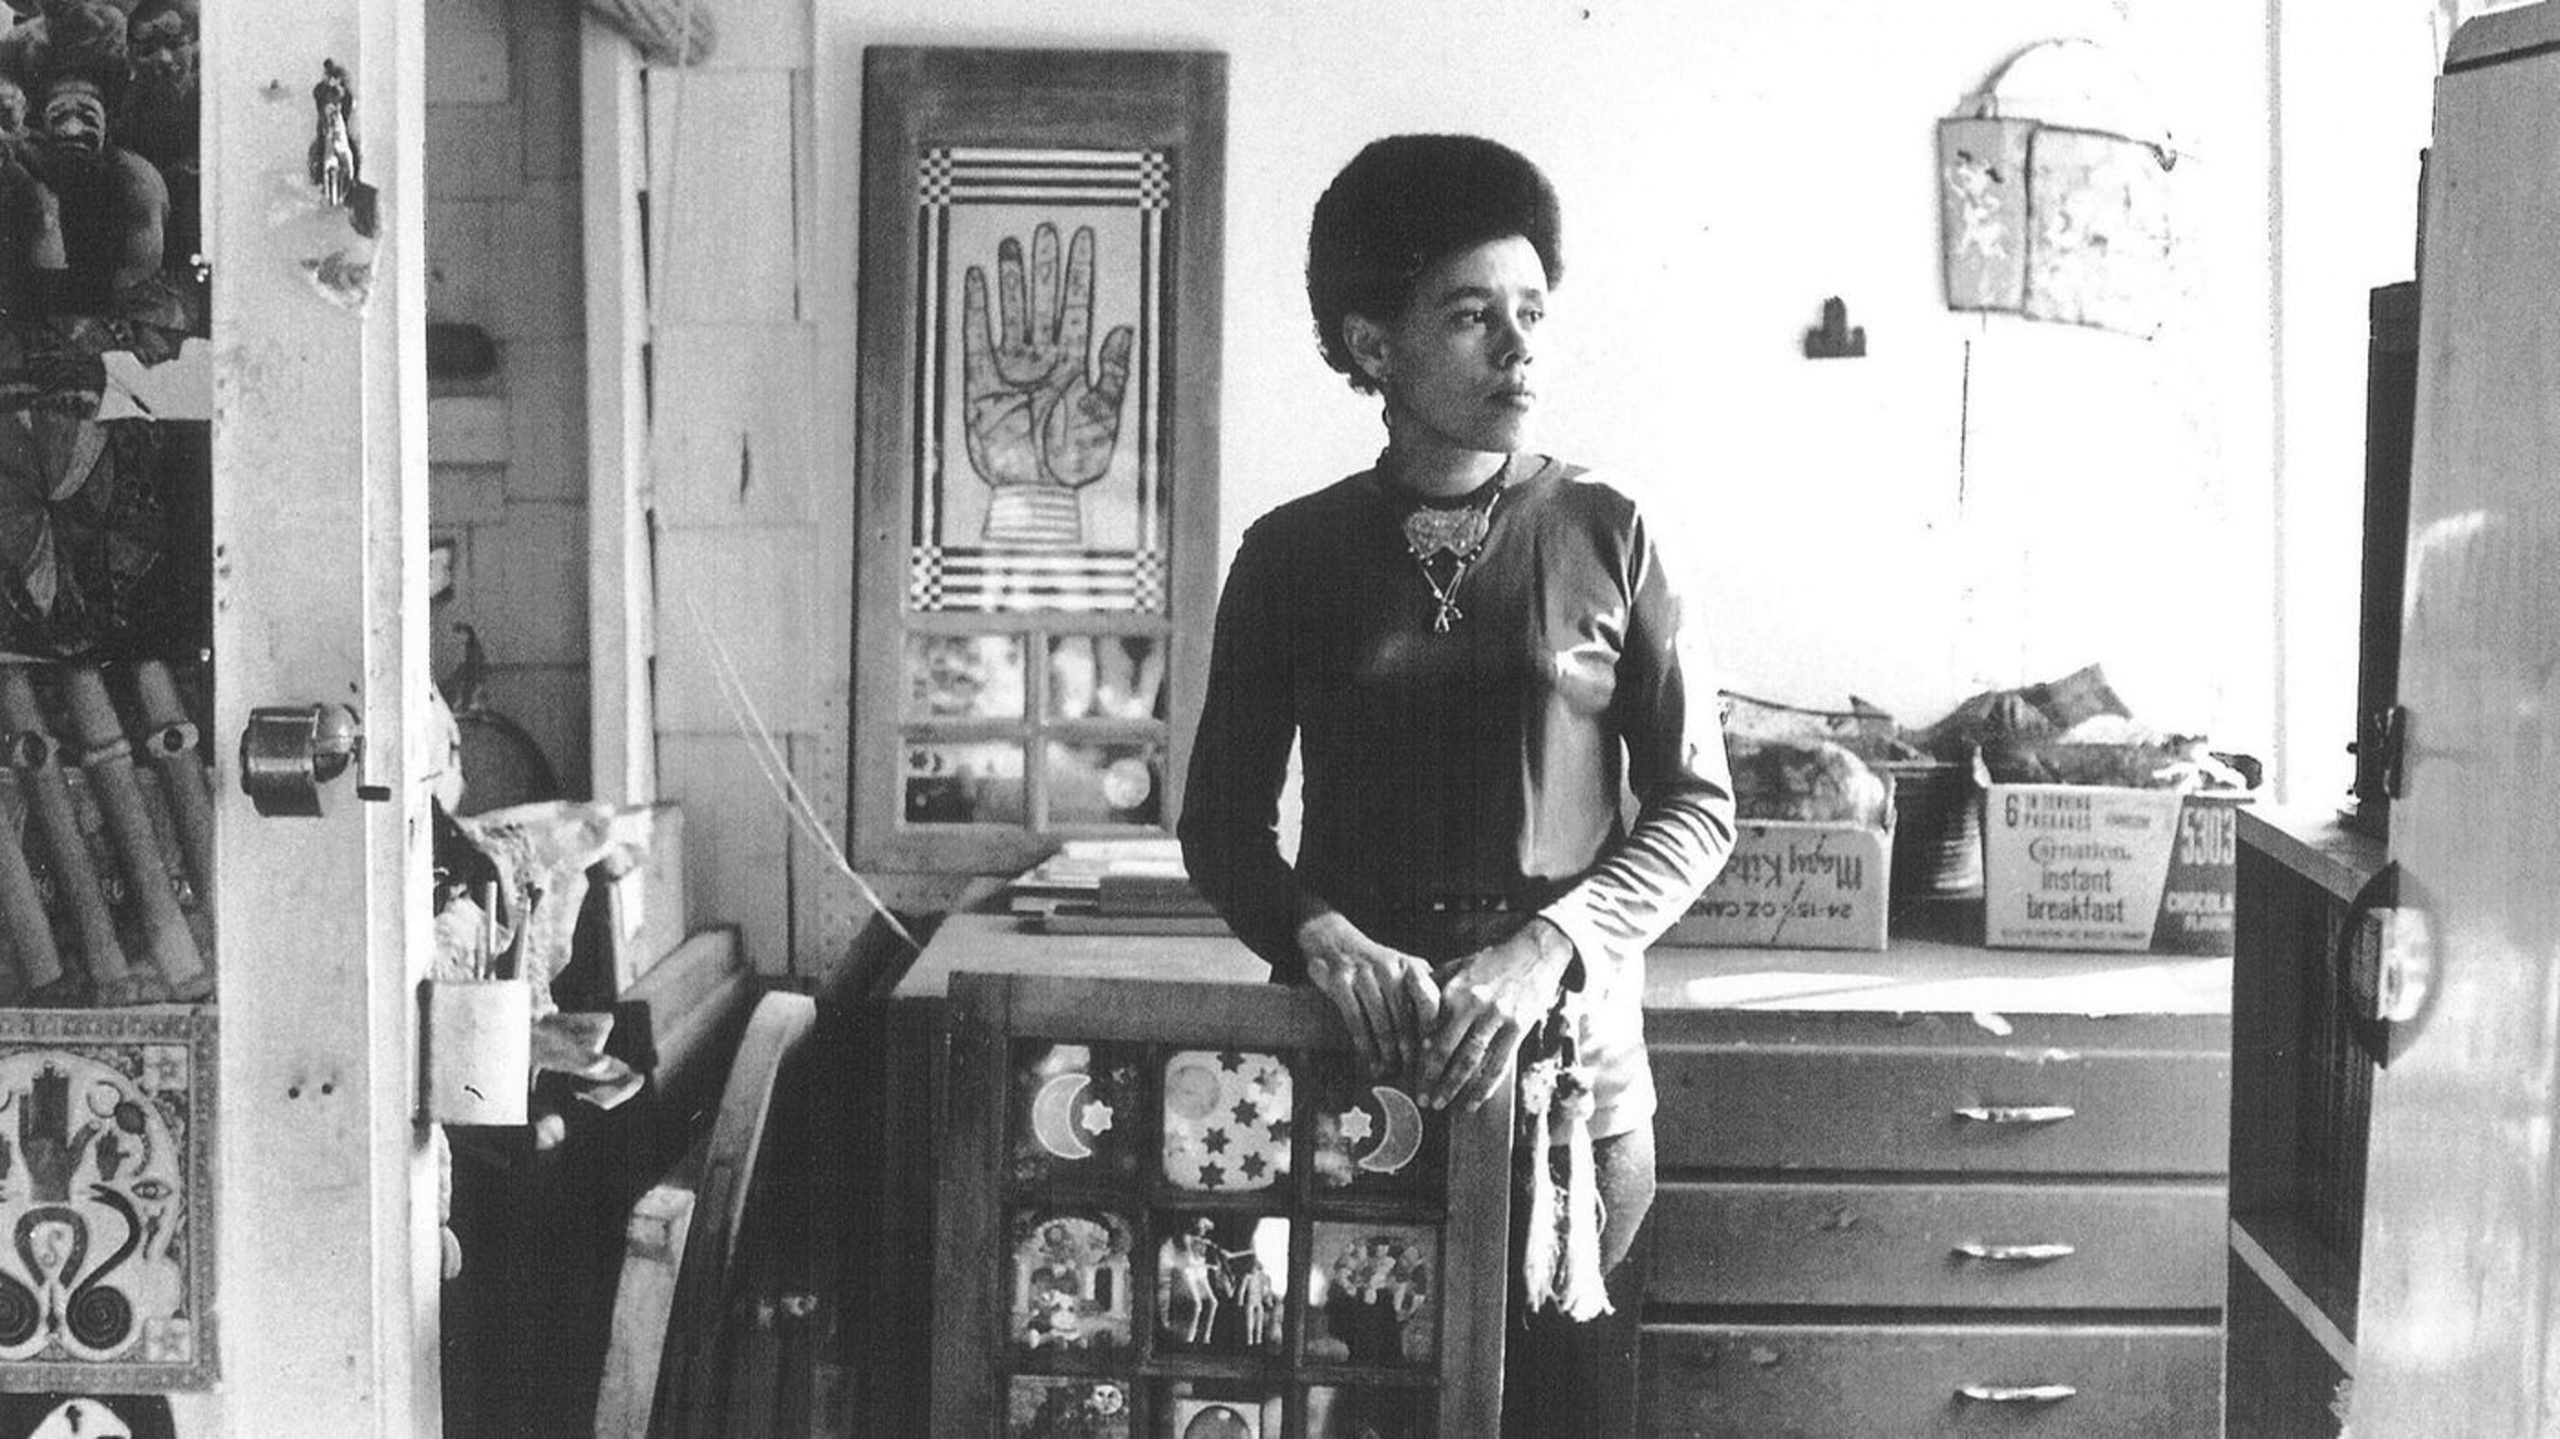 Portrait of Betye Saar in her Laurel Canyon Studio, 1970. Standing with Black Girl's Window, 1969, which was acquired by MOMA in 2013. (Bob Nakamura / Roberts Projects, Los Angeles)